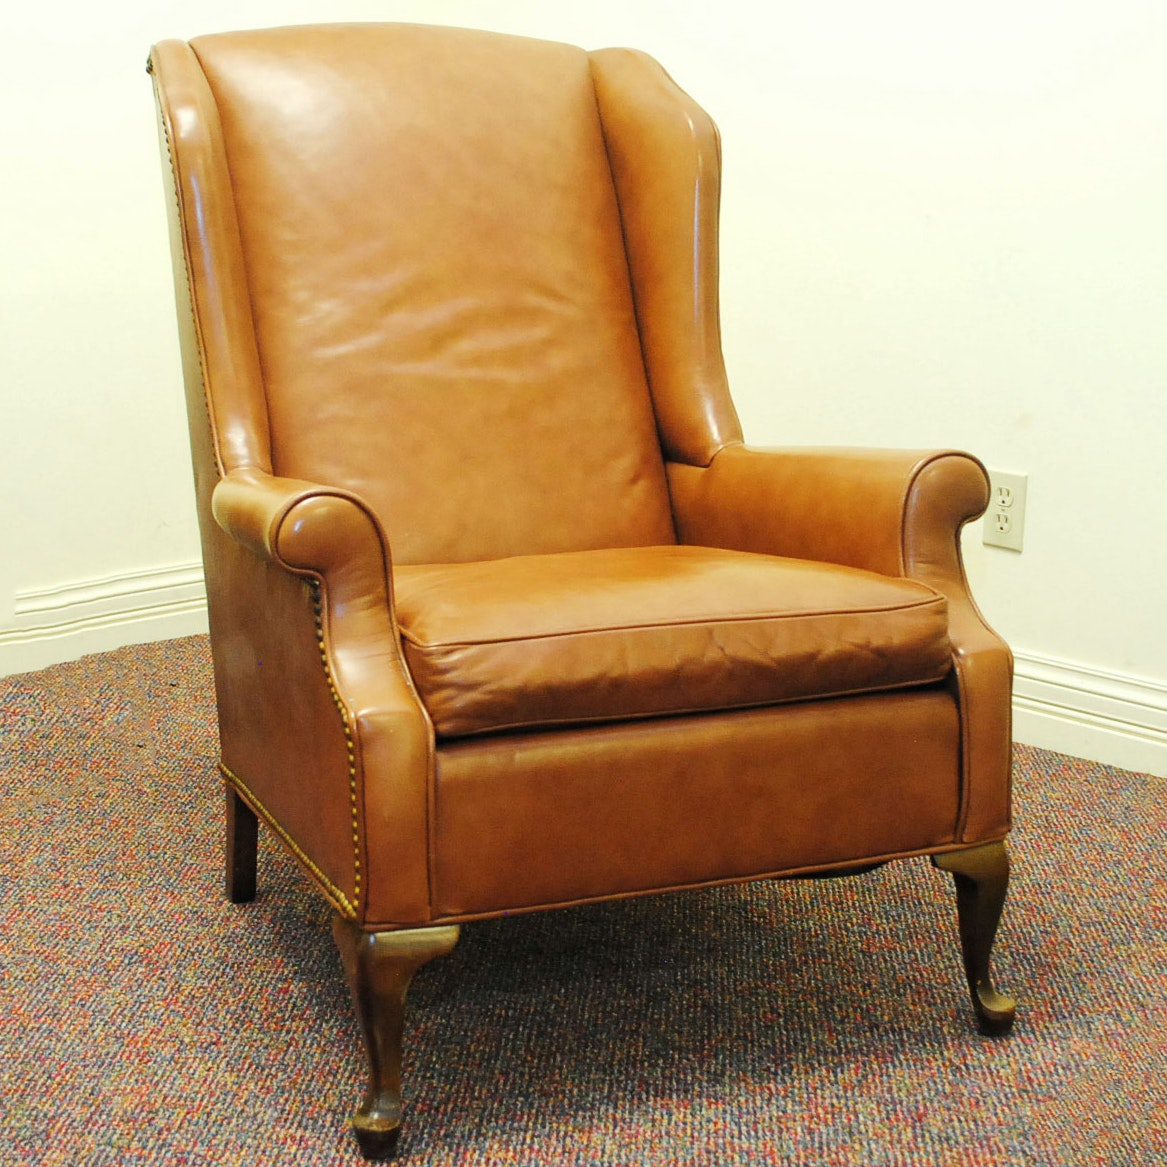 Vintage Leather Wingback Chair From Joseph Lang Furniture ...